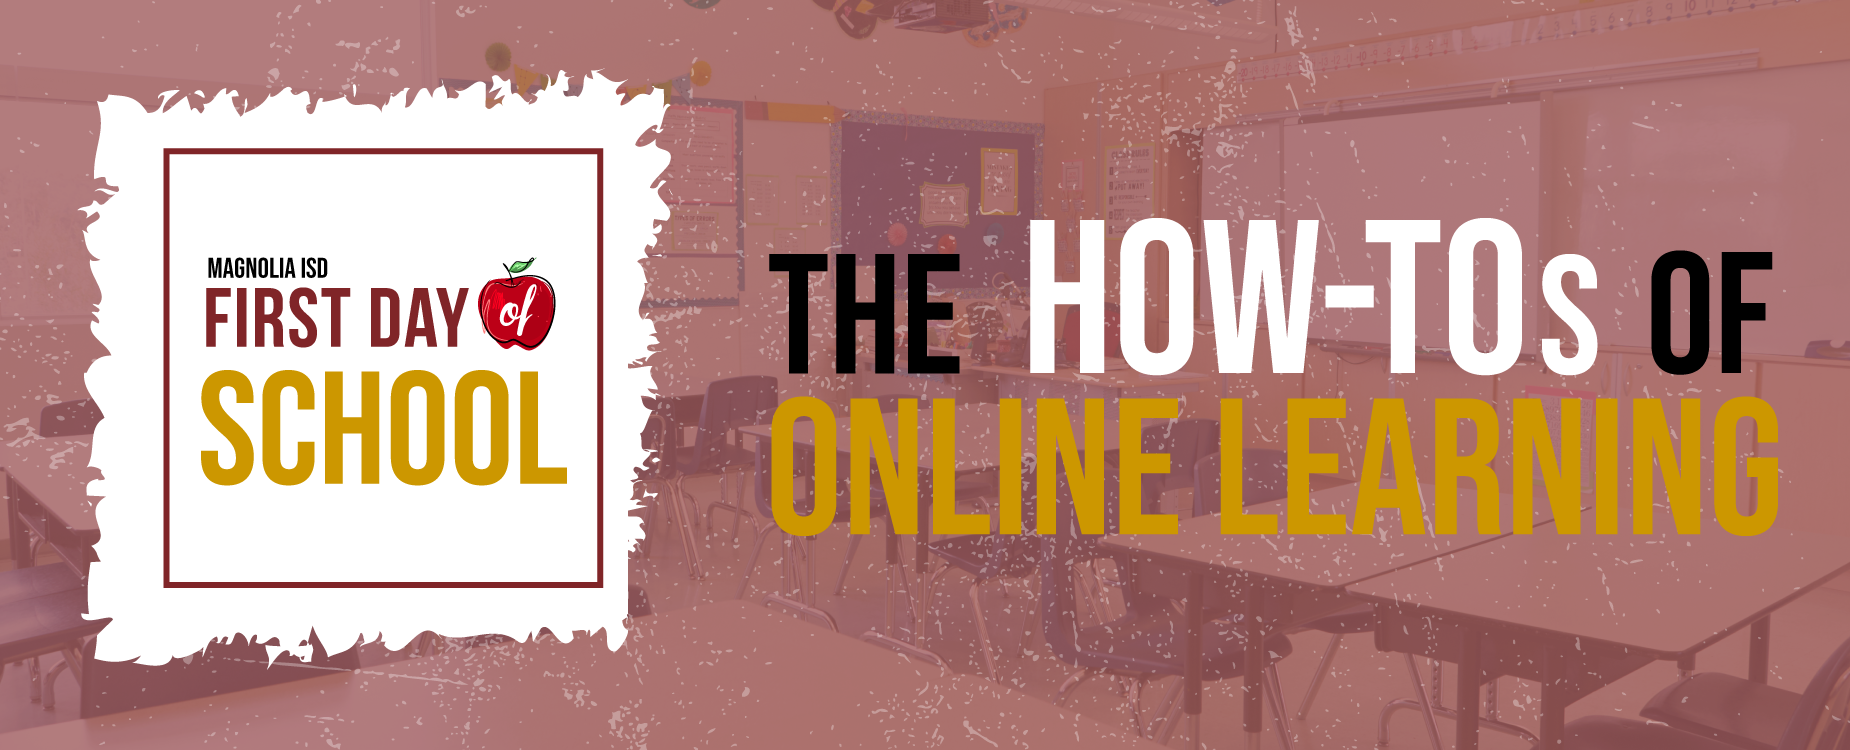 How to of Online Learning